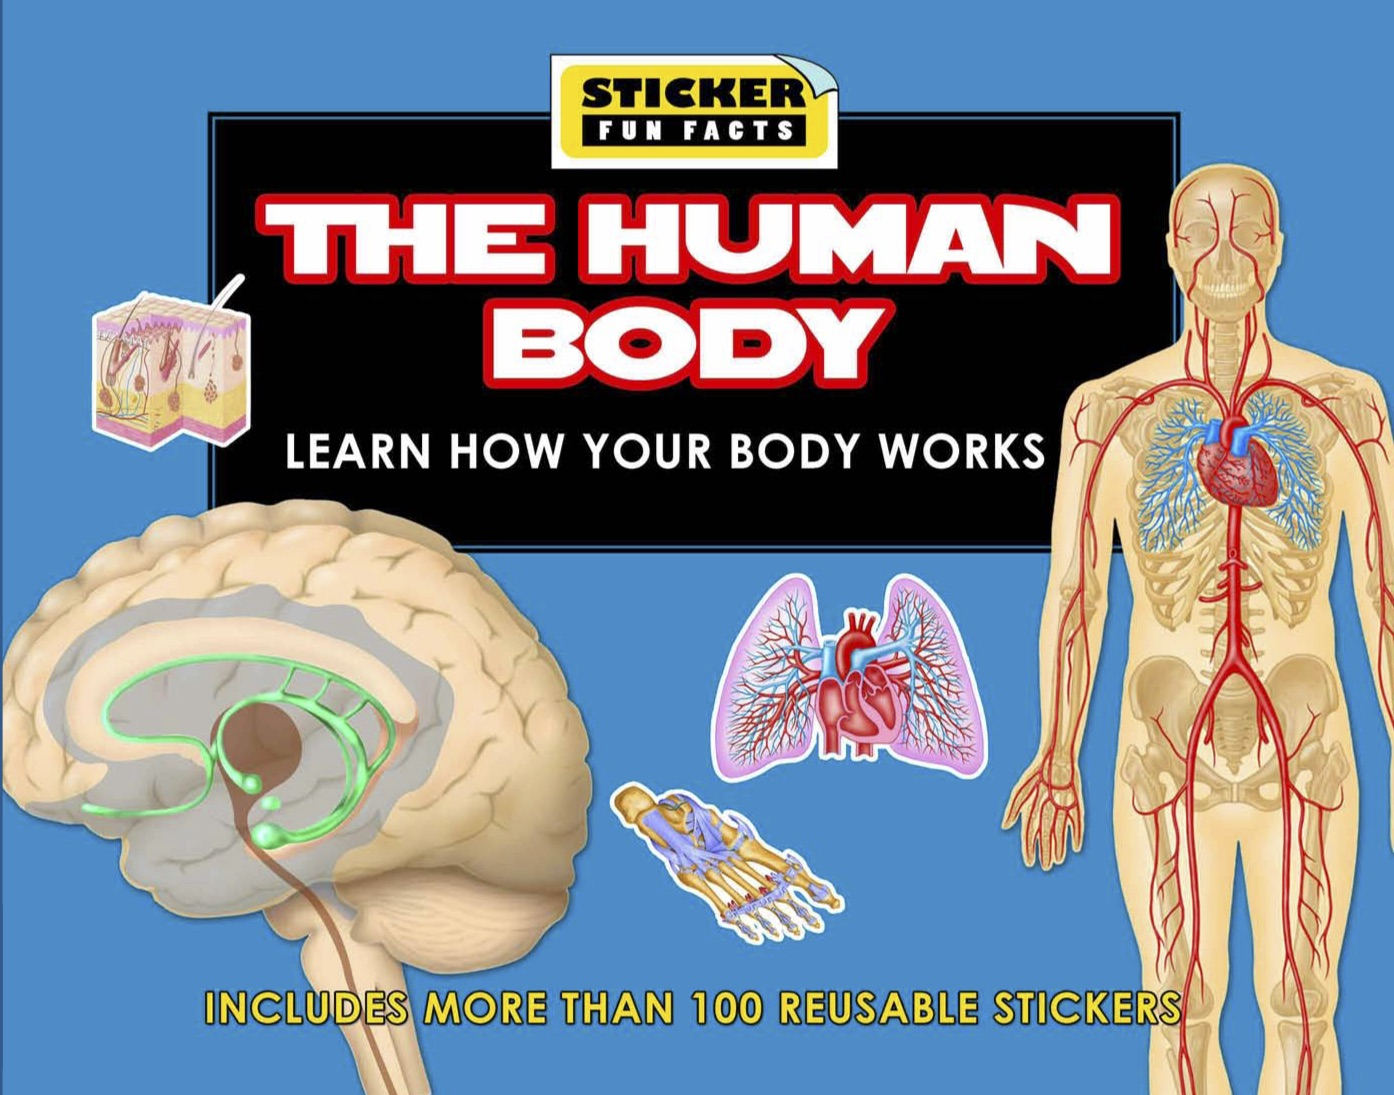 Sticker Fun Facts: The Human Body